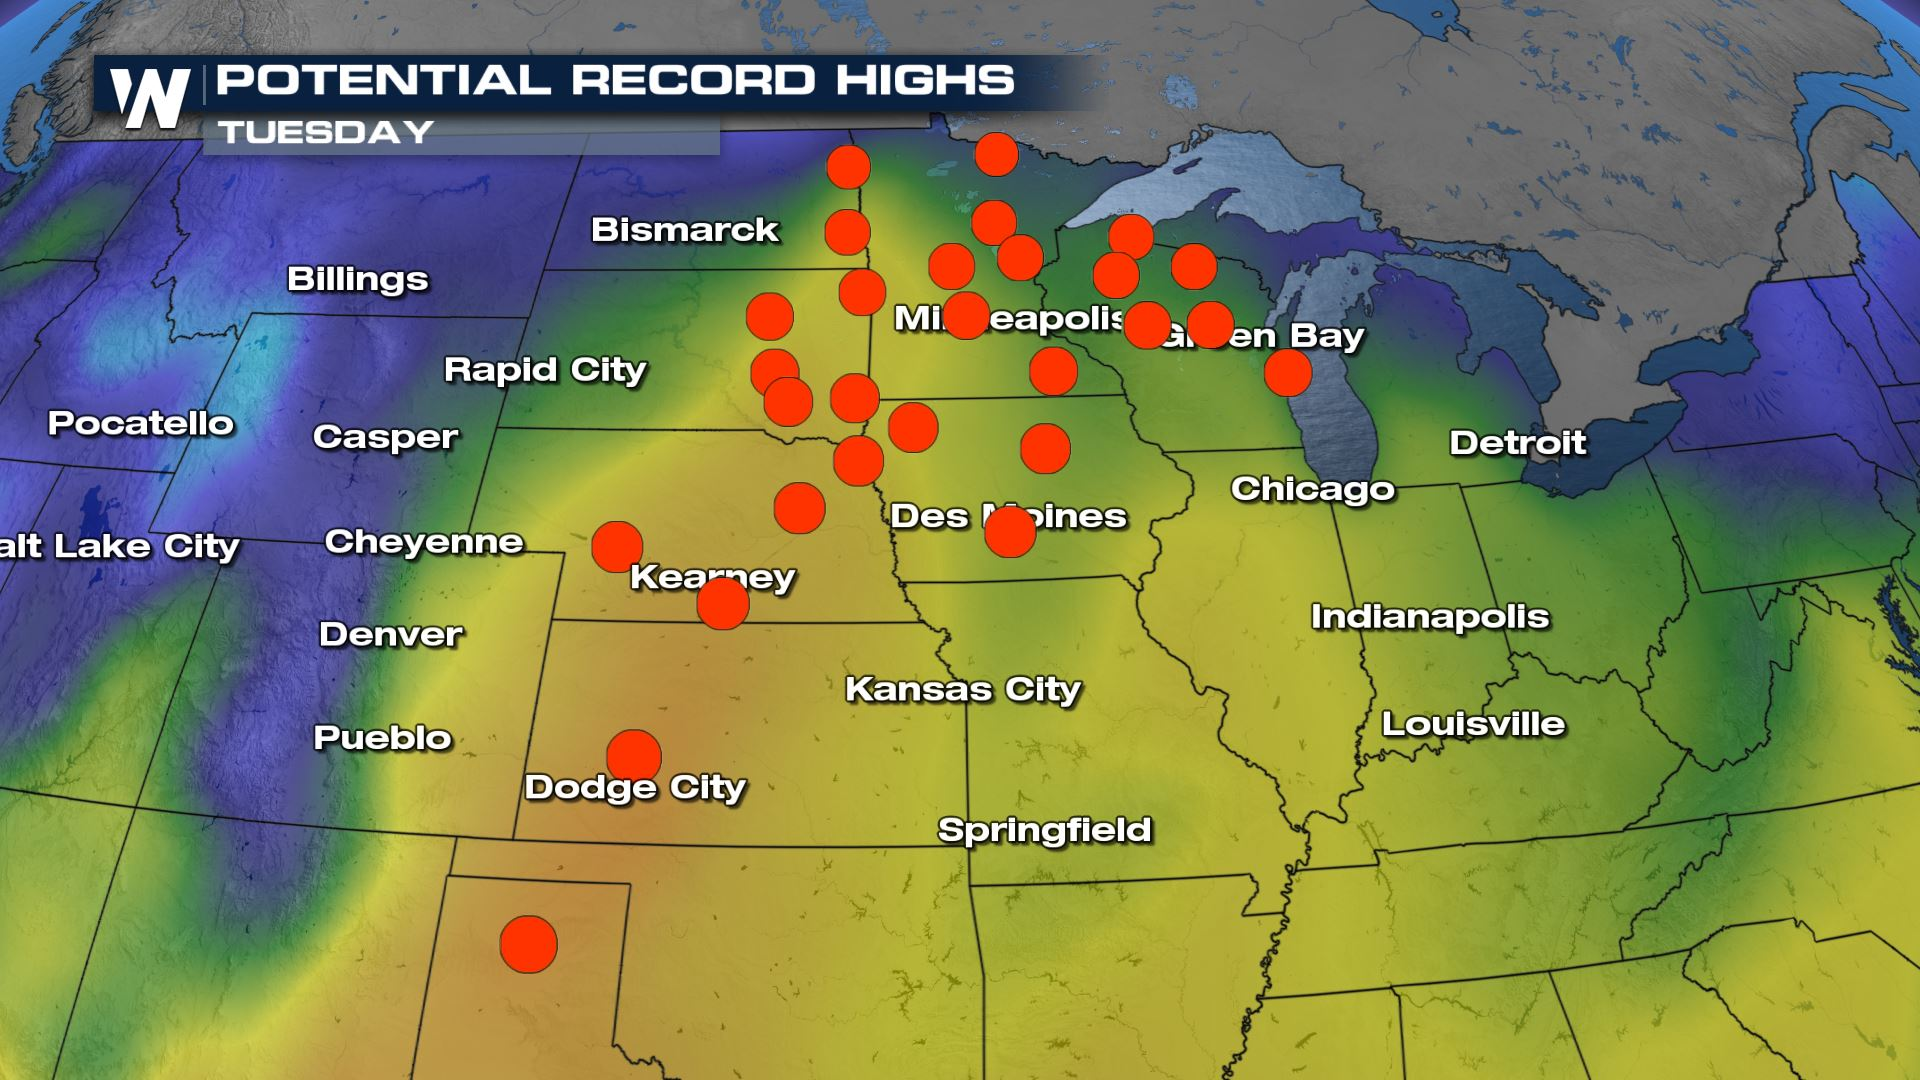 Record Warmth Stretches From Central U.S to East Coast